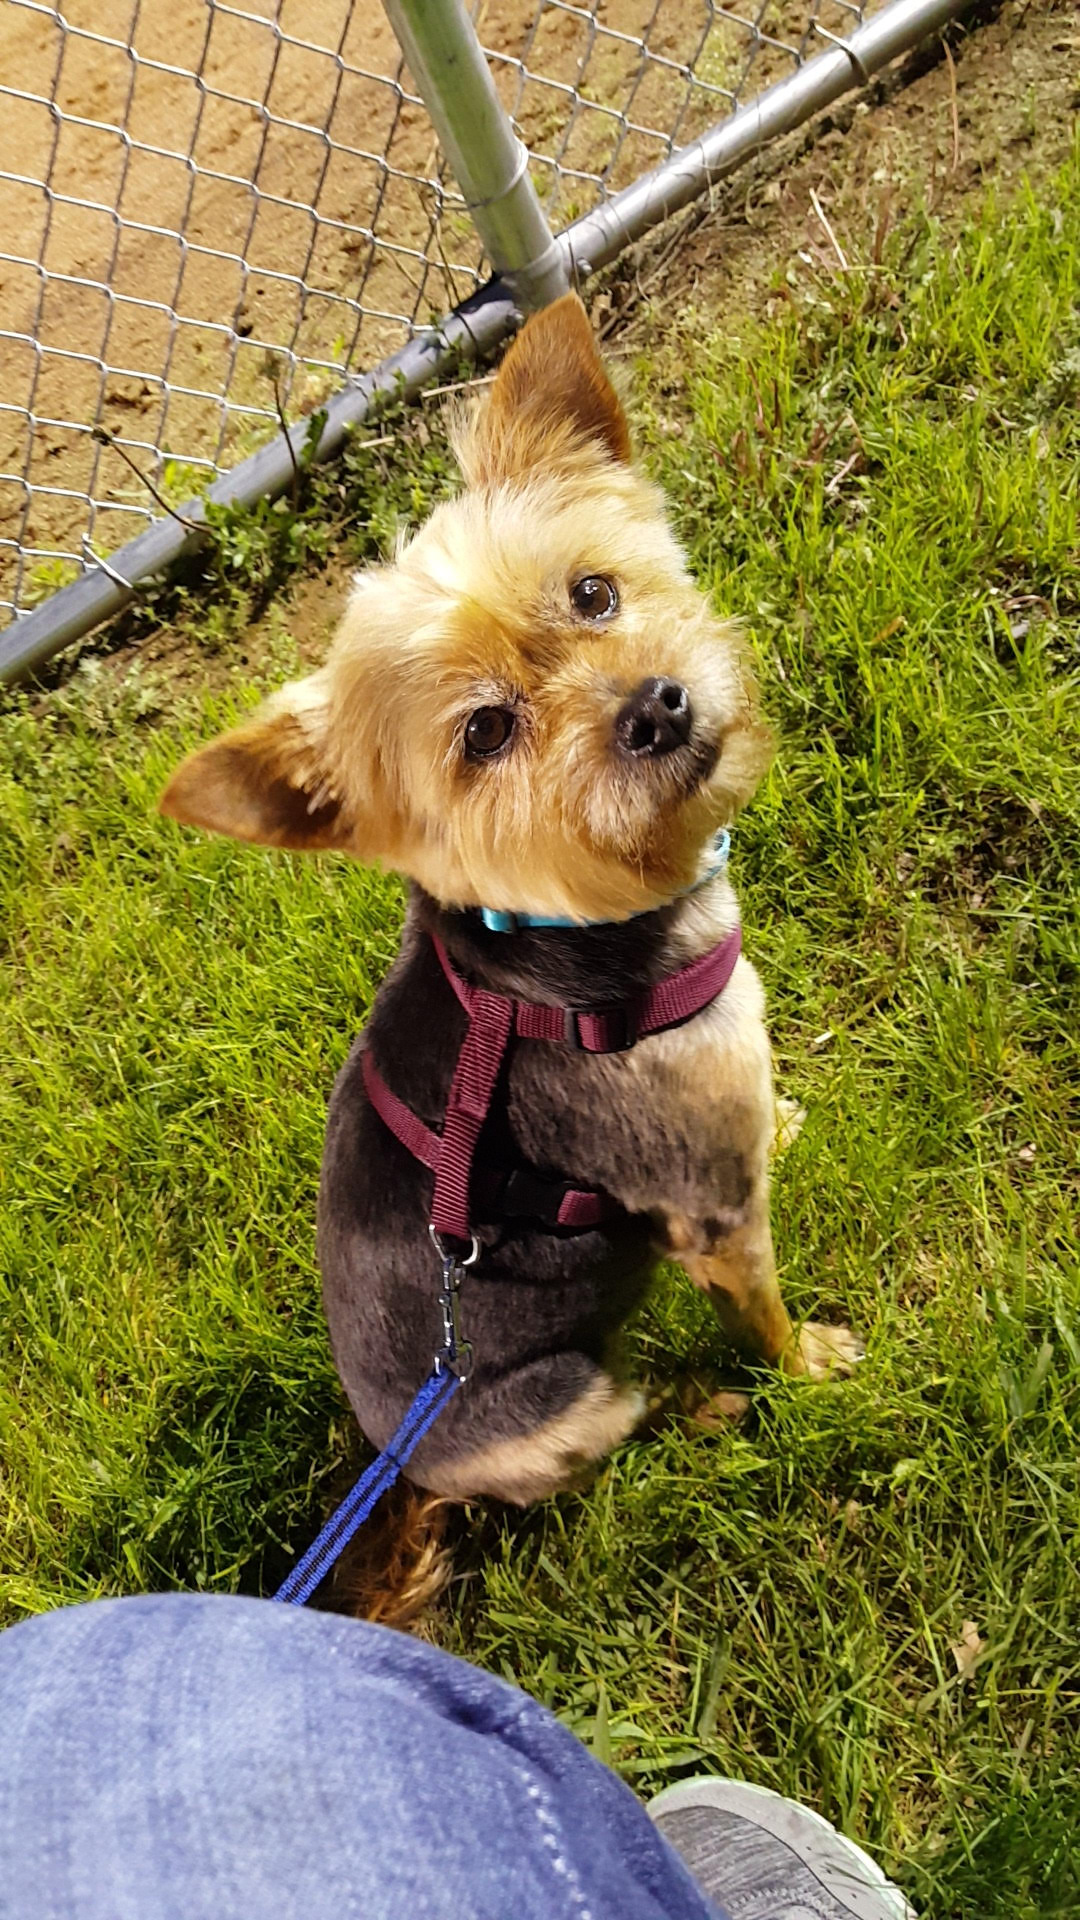 Yorkie sitting outside next to a fence looking up at its owner